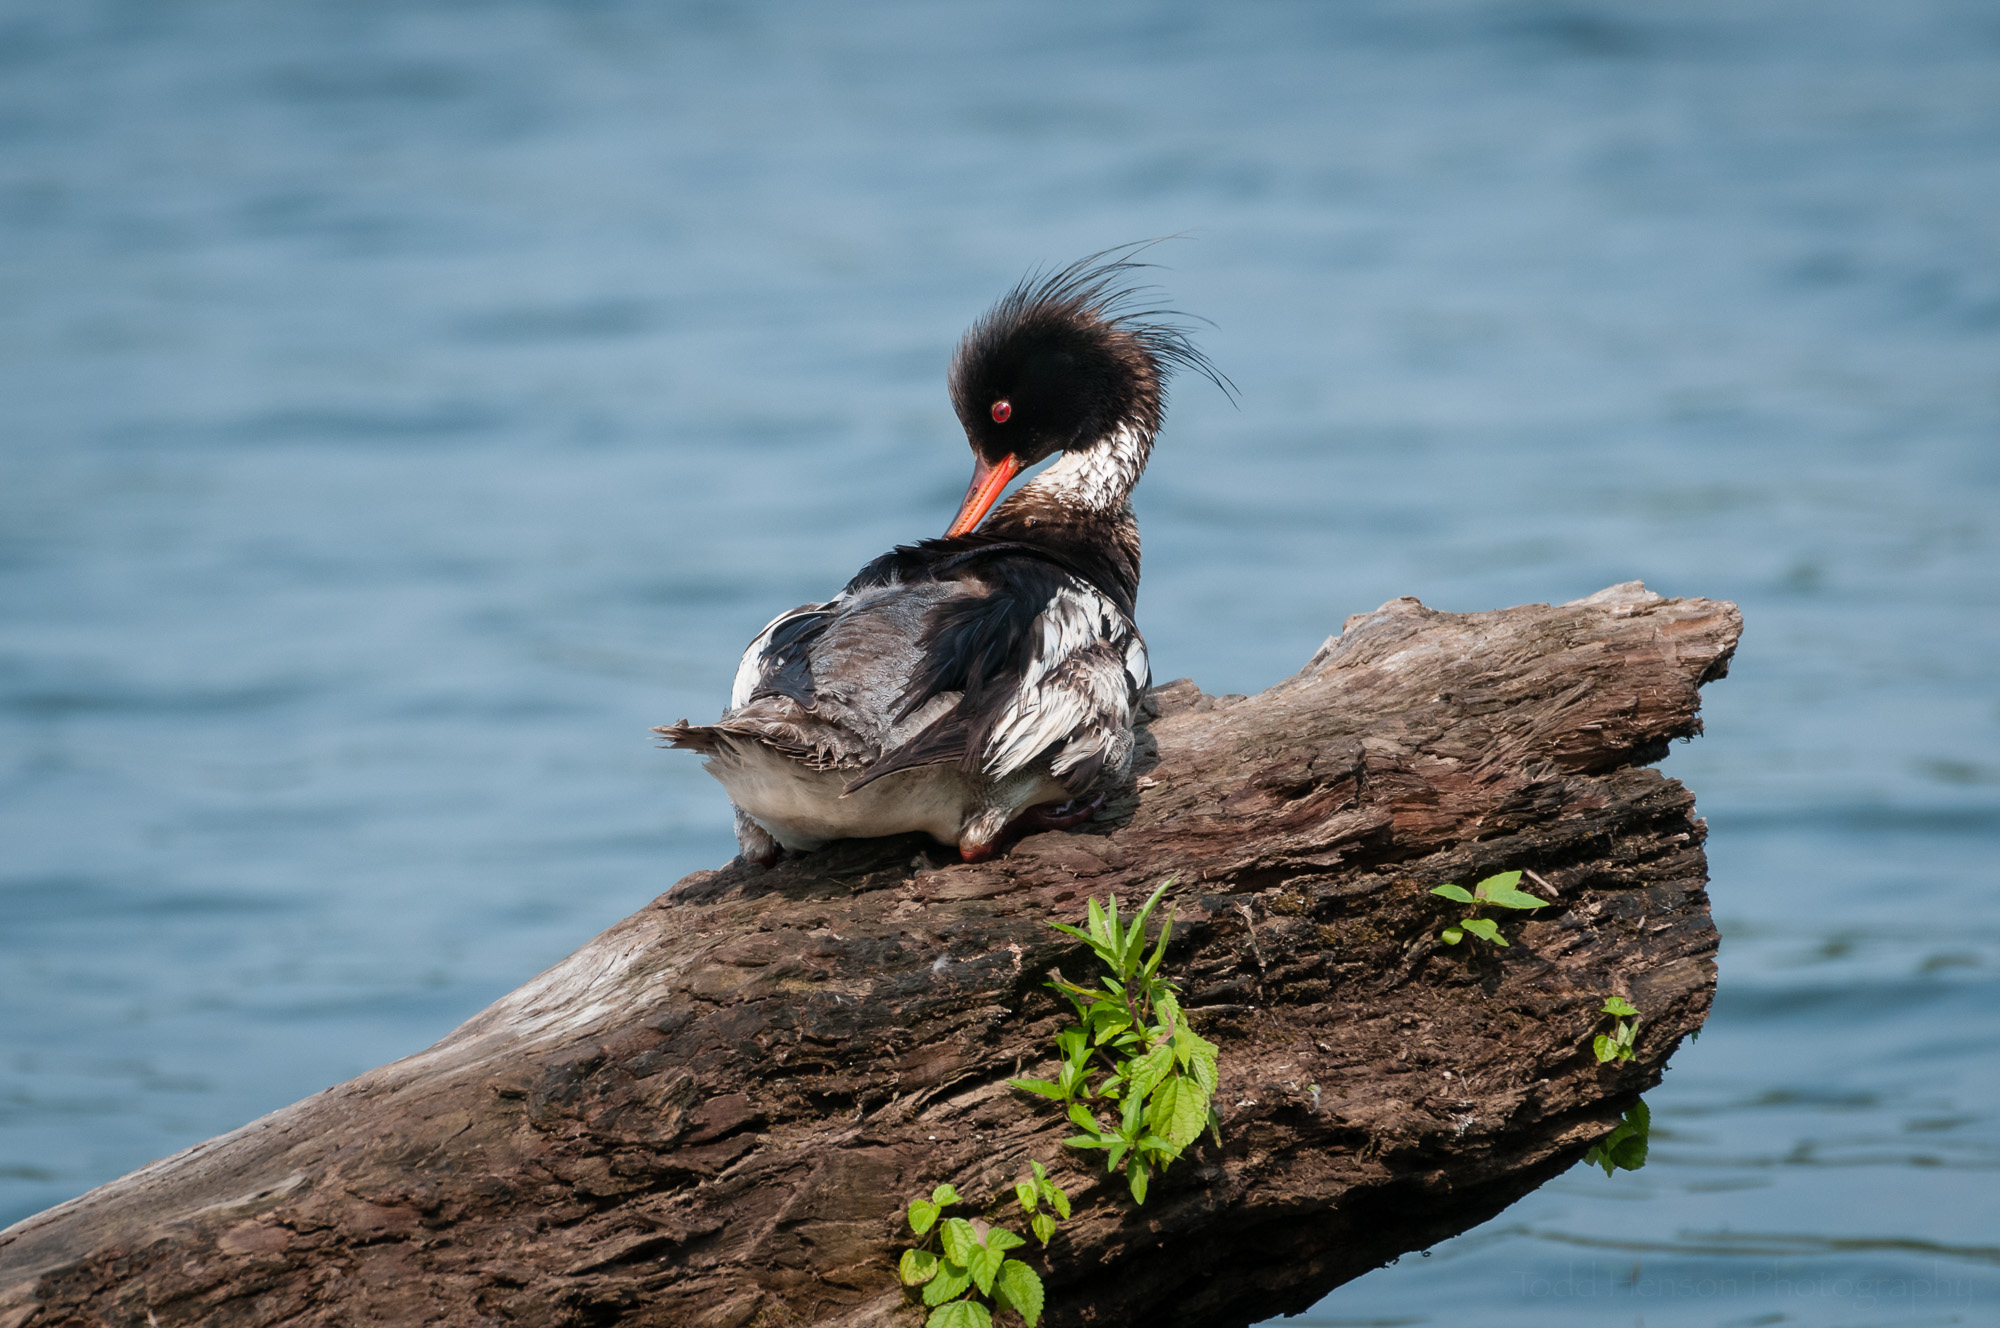 Male Red-breasted Merganser preening on a log.